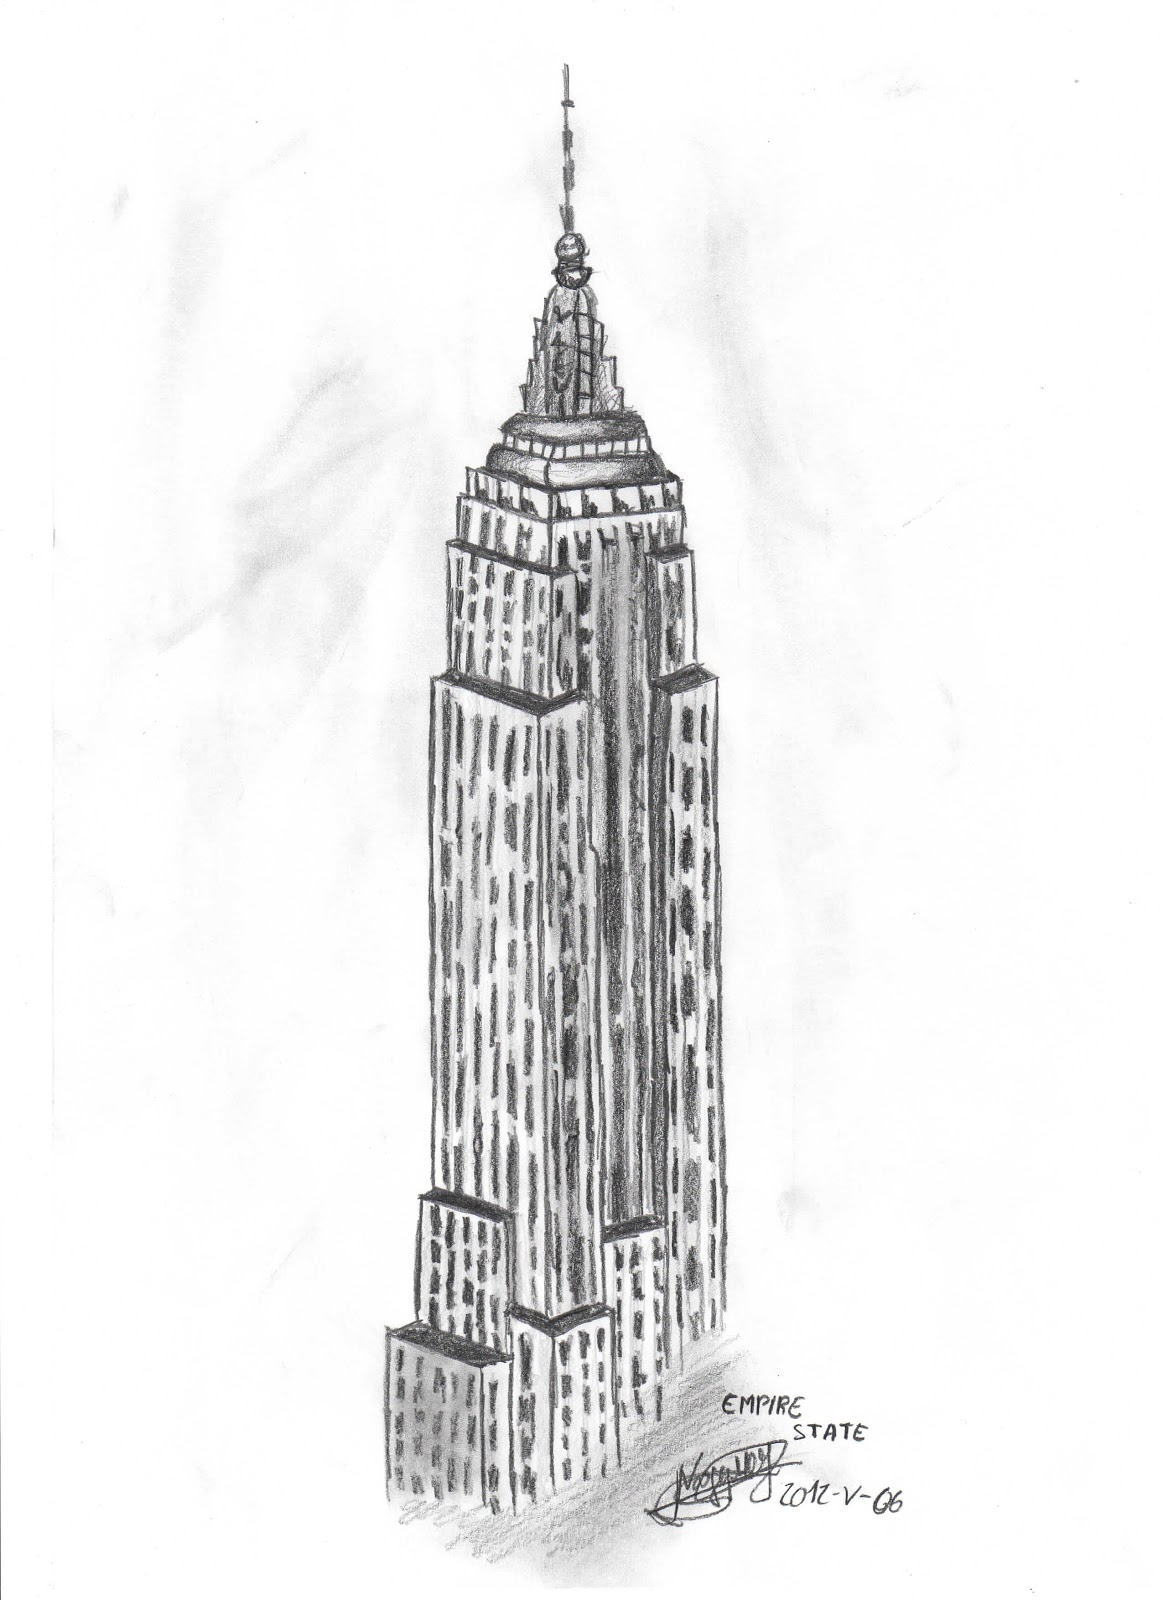 the empire state building essay Read this miscellaneous essay and over 88,000 other research documents empire state building new york city's soaring skyline wouldn't be the same without the empire state building.